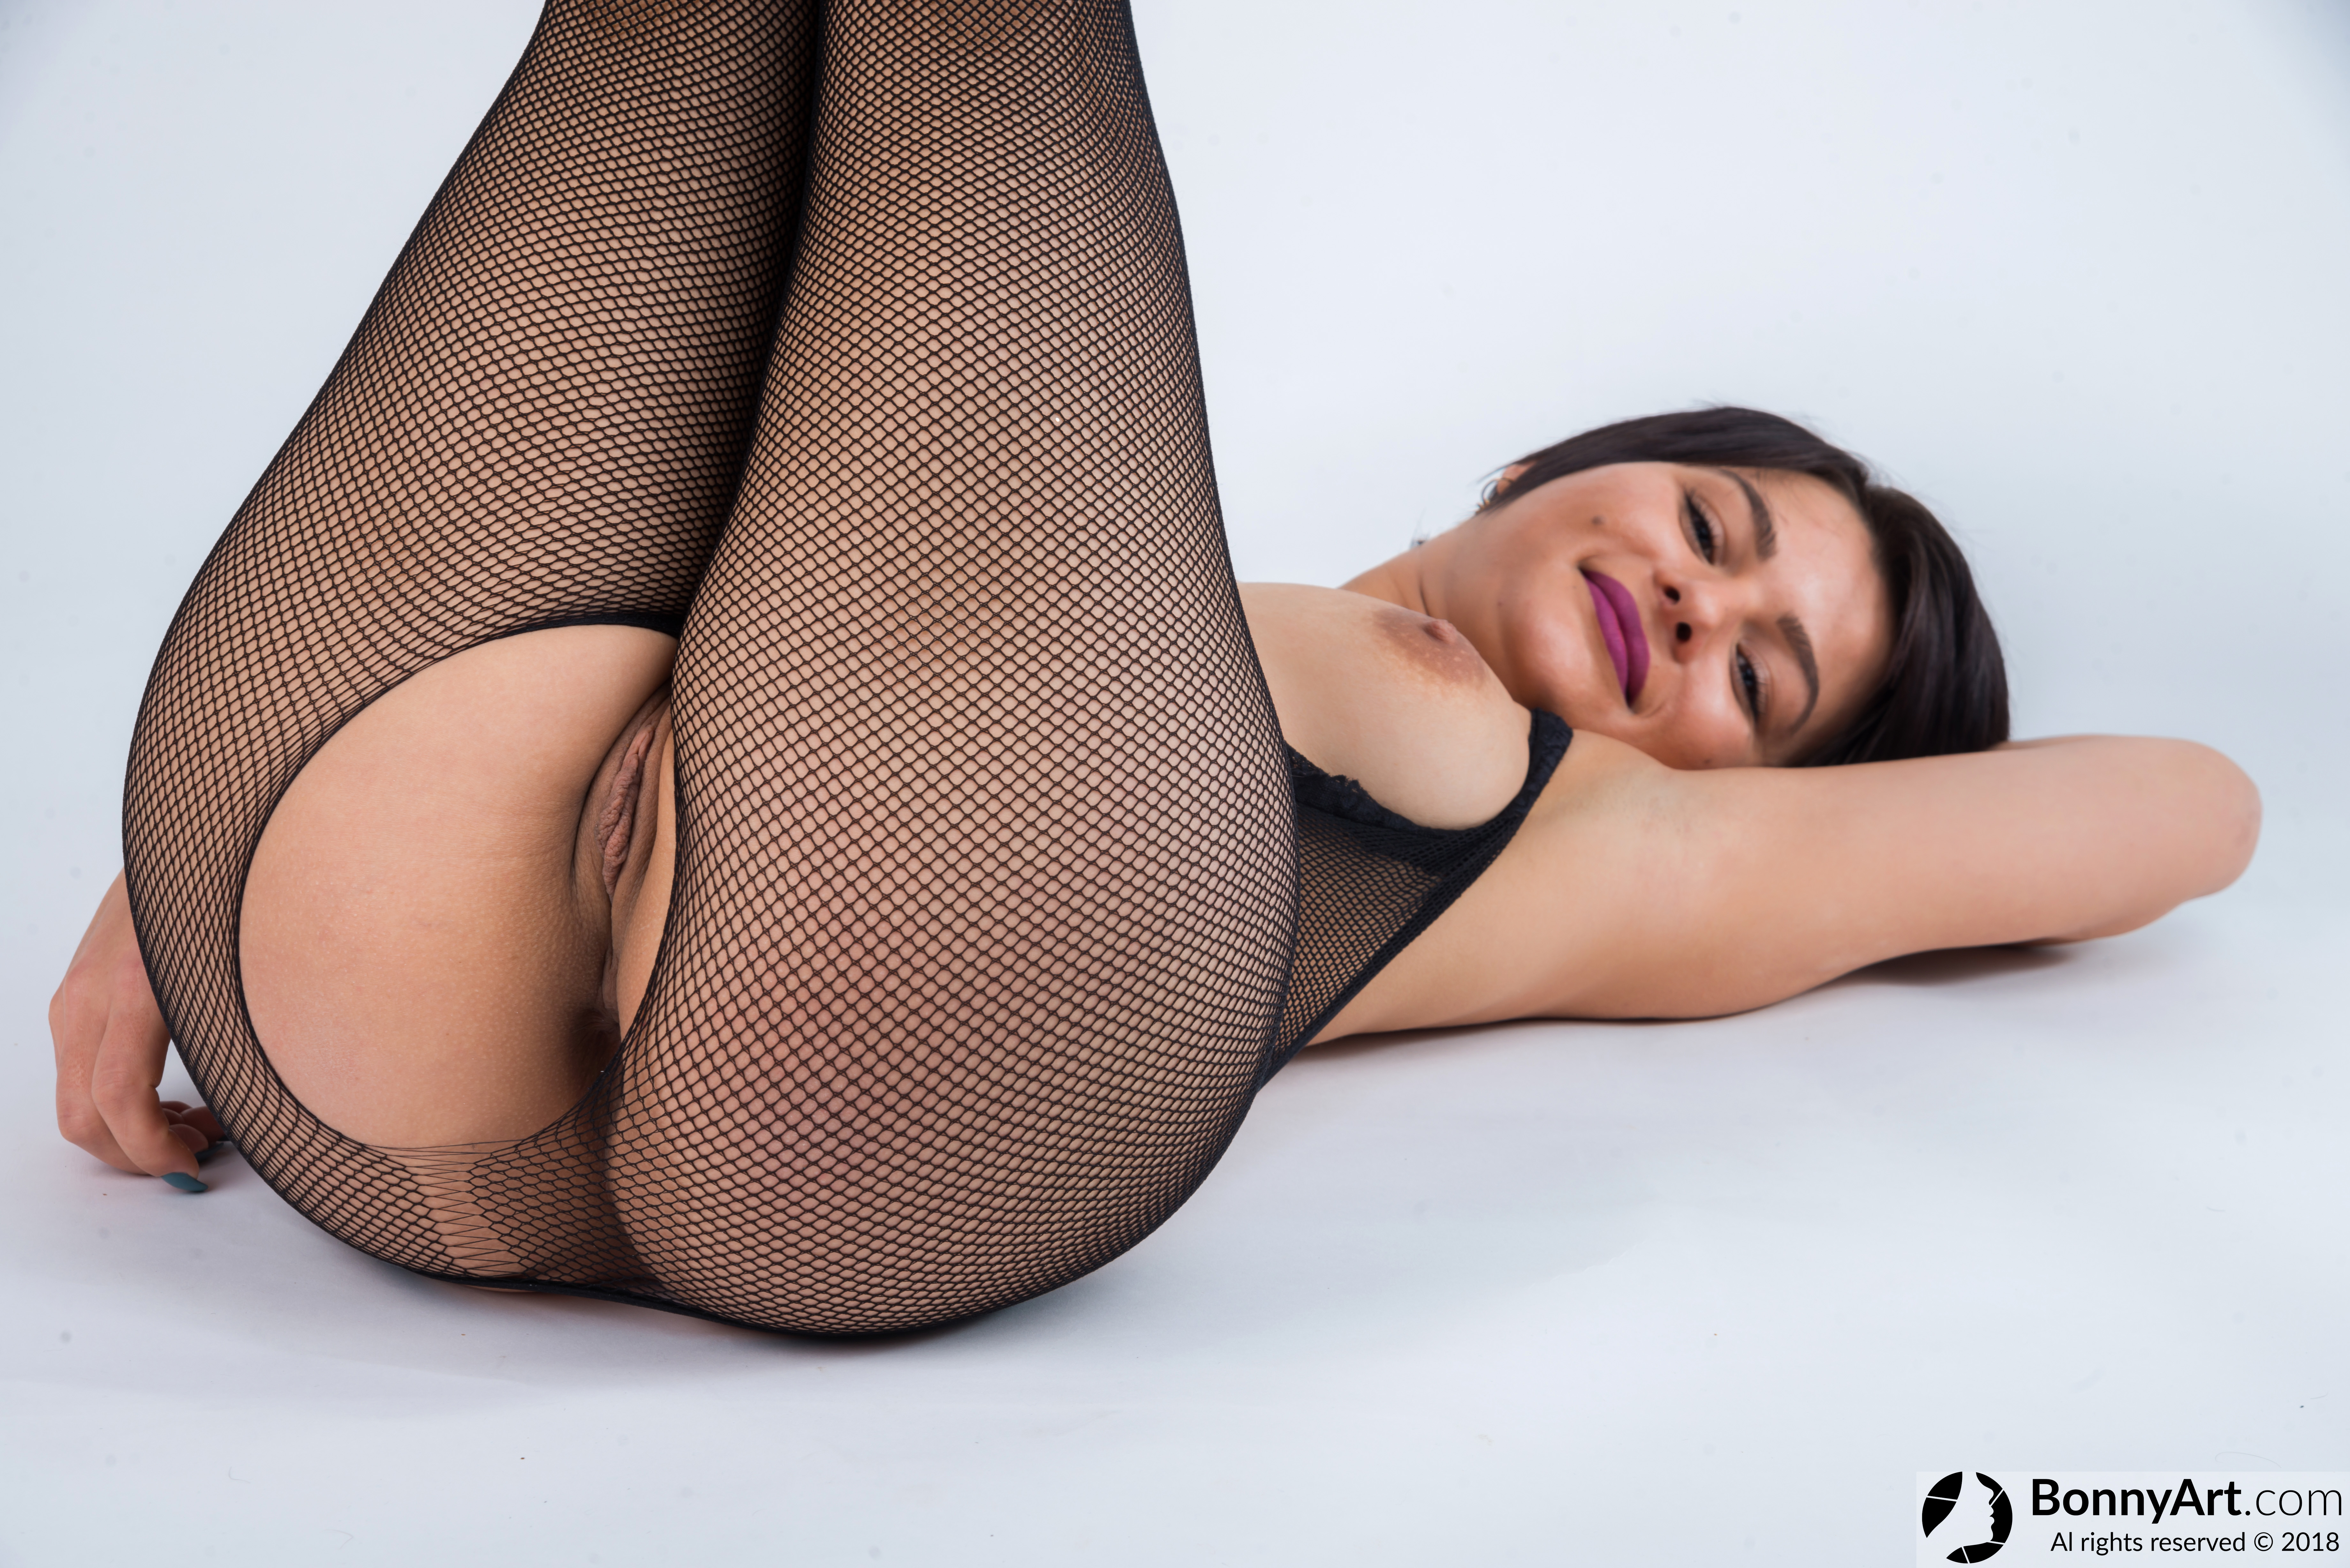 Body Stockings Fishnets Girl showing Pussy and Breast HD